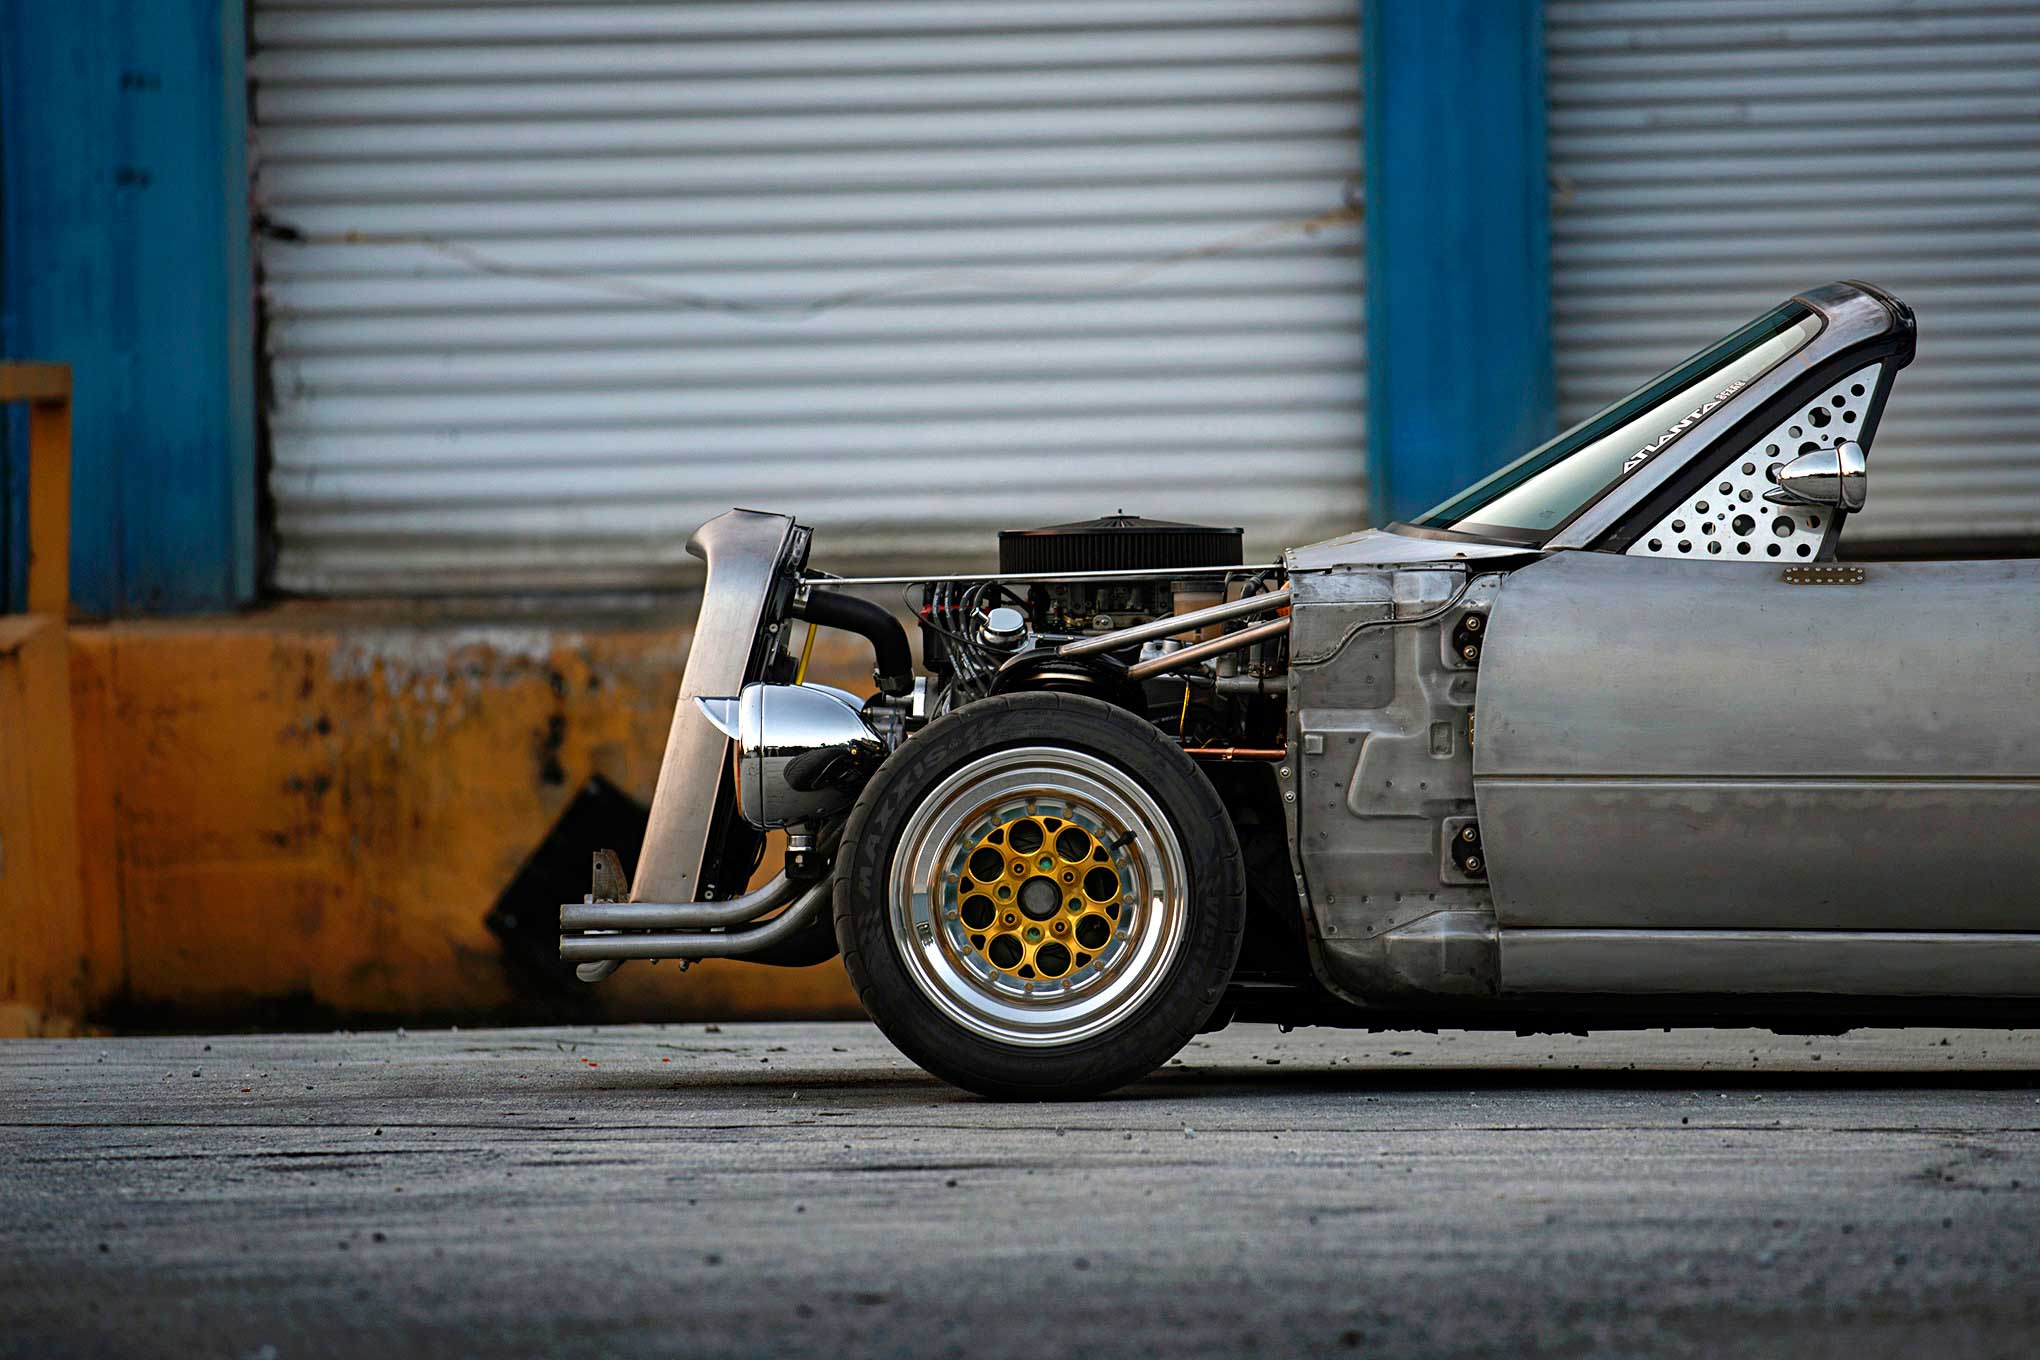 Mazda Miata Hot Rod V8 - What the Hell ?! 45